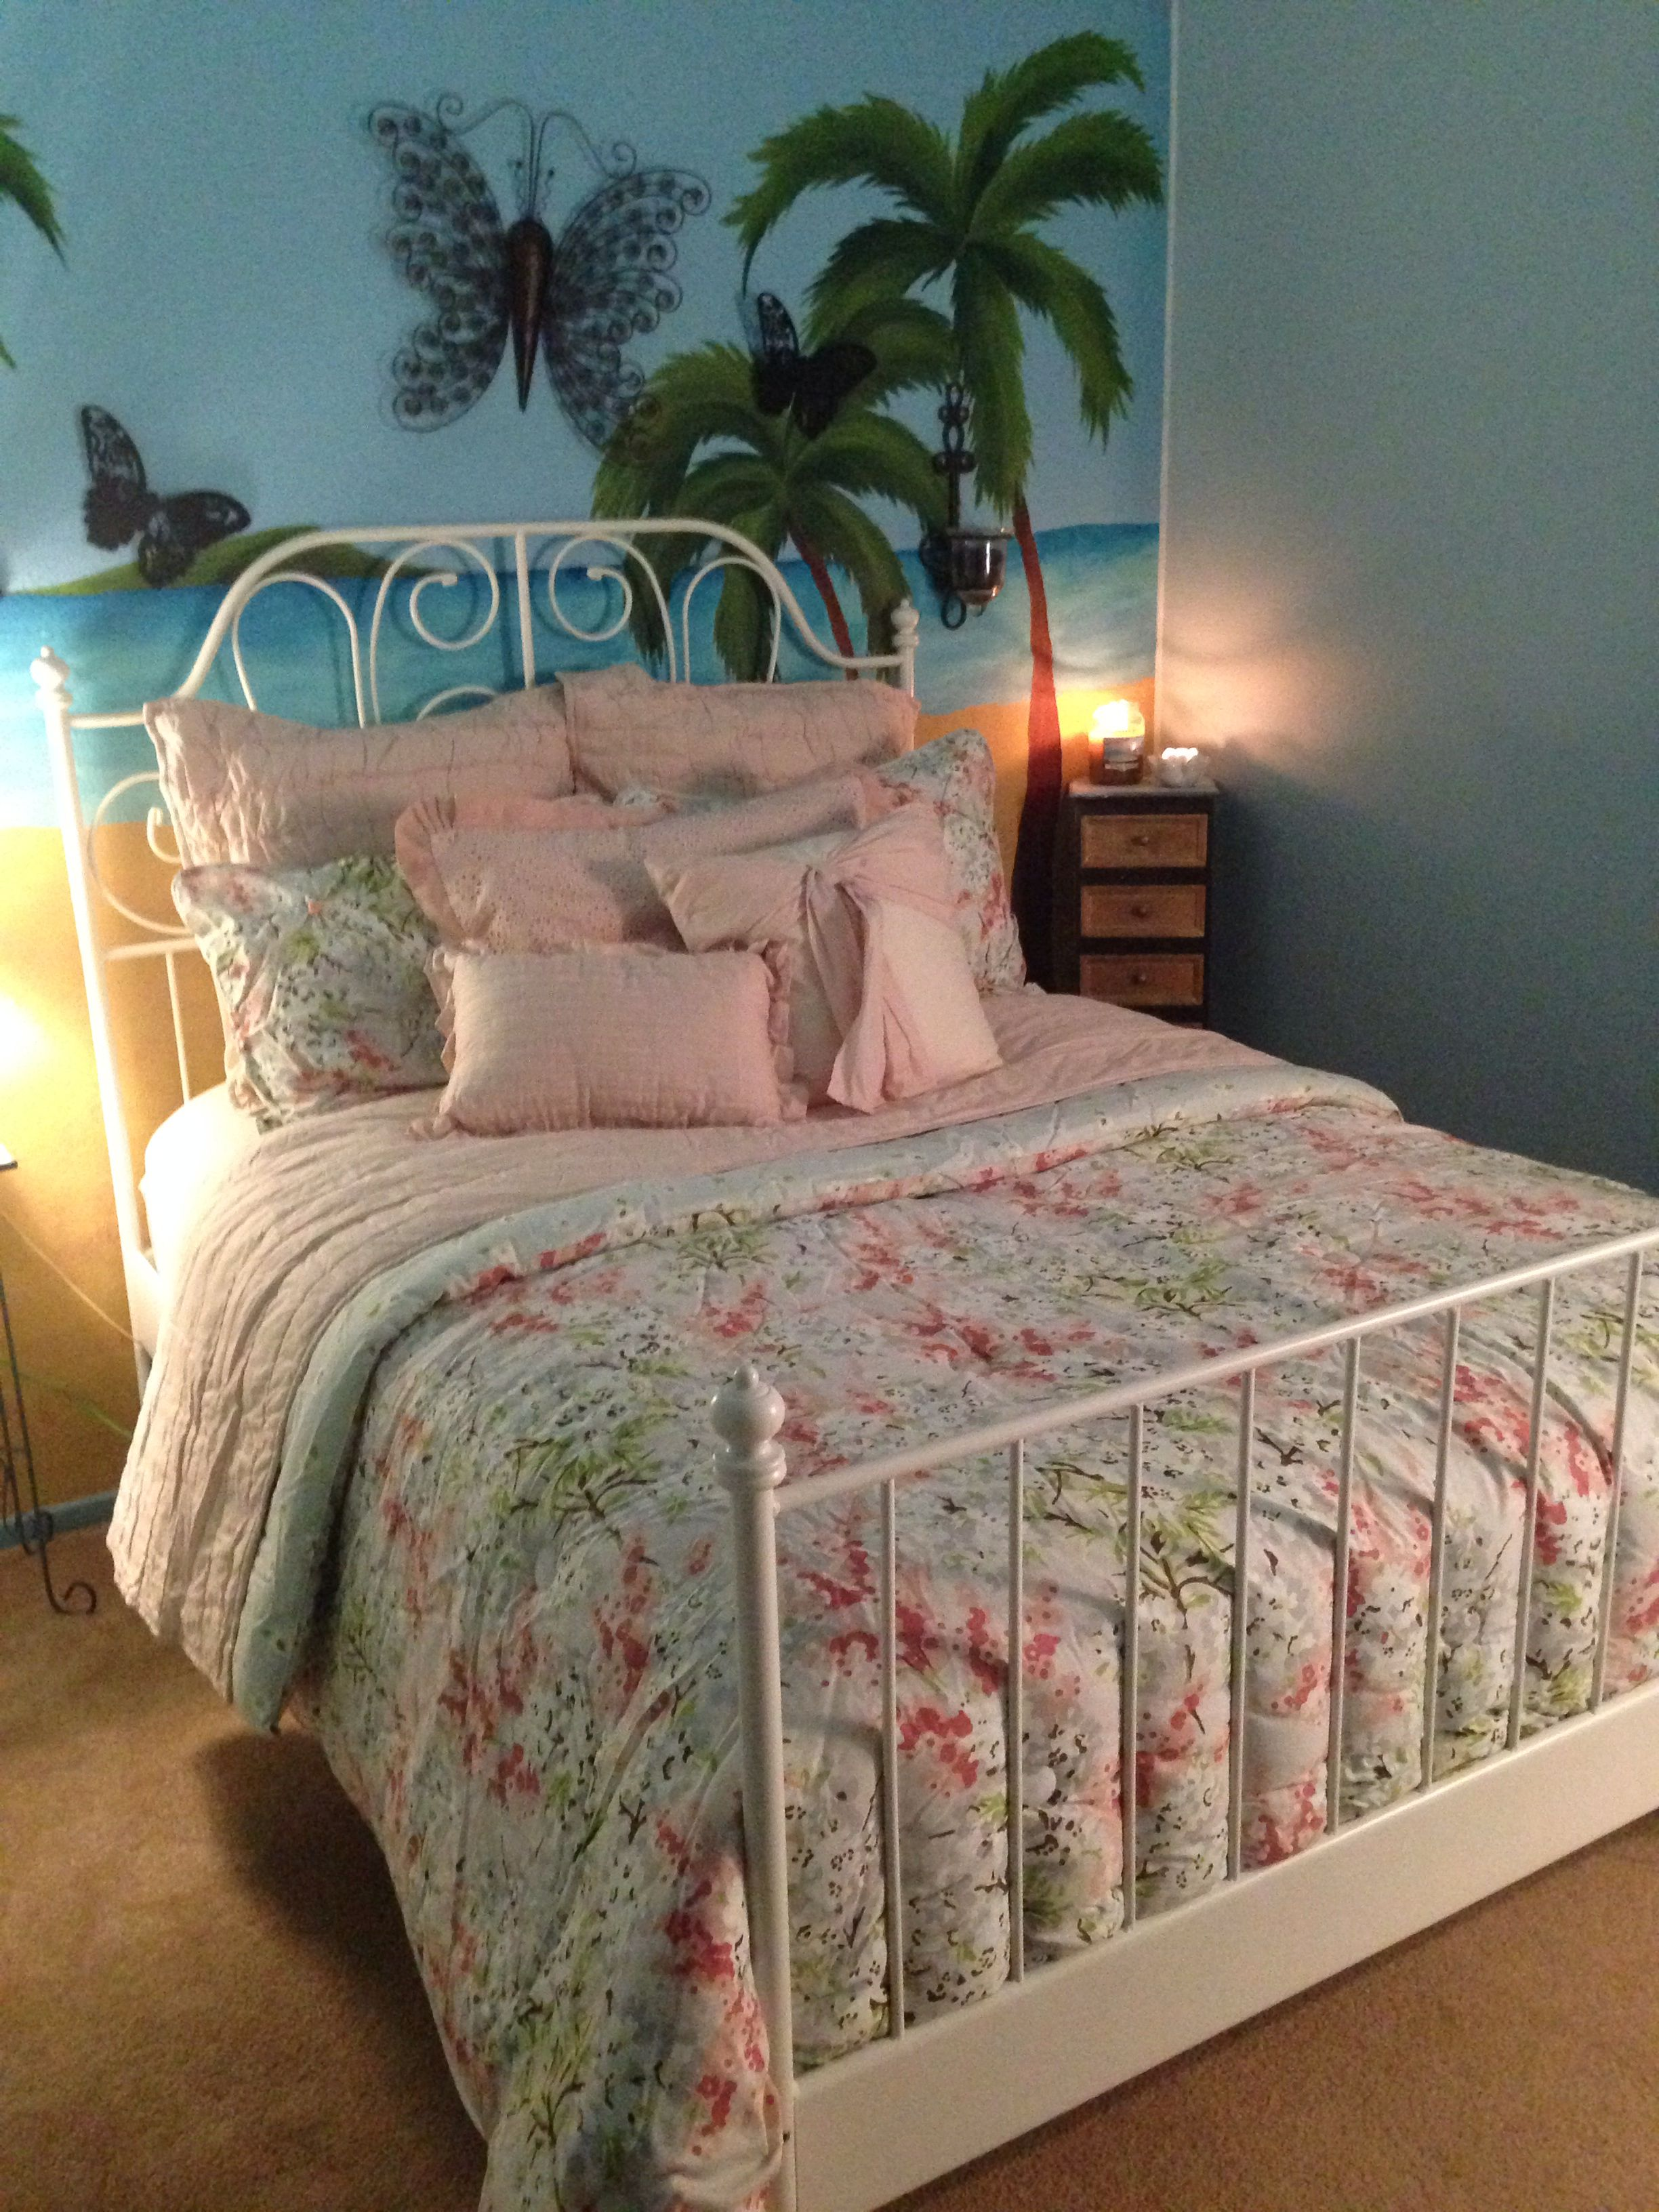 Kohls Bedroom Furniture Lc Lauren Conrad Teaberry Bedding Set From Kohls With Ikea Leirvik